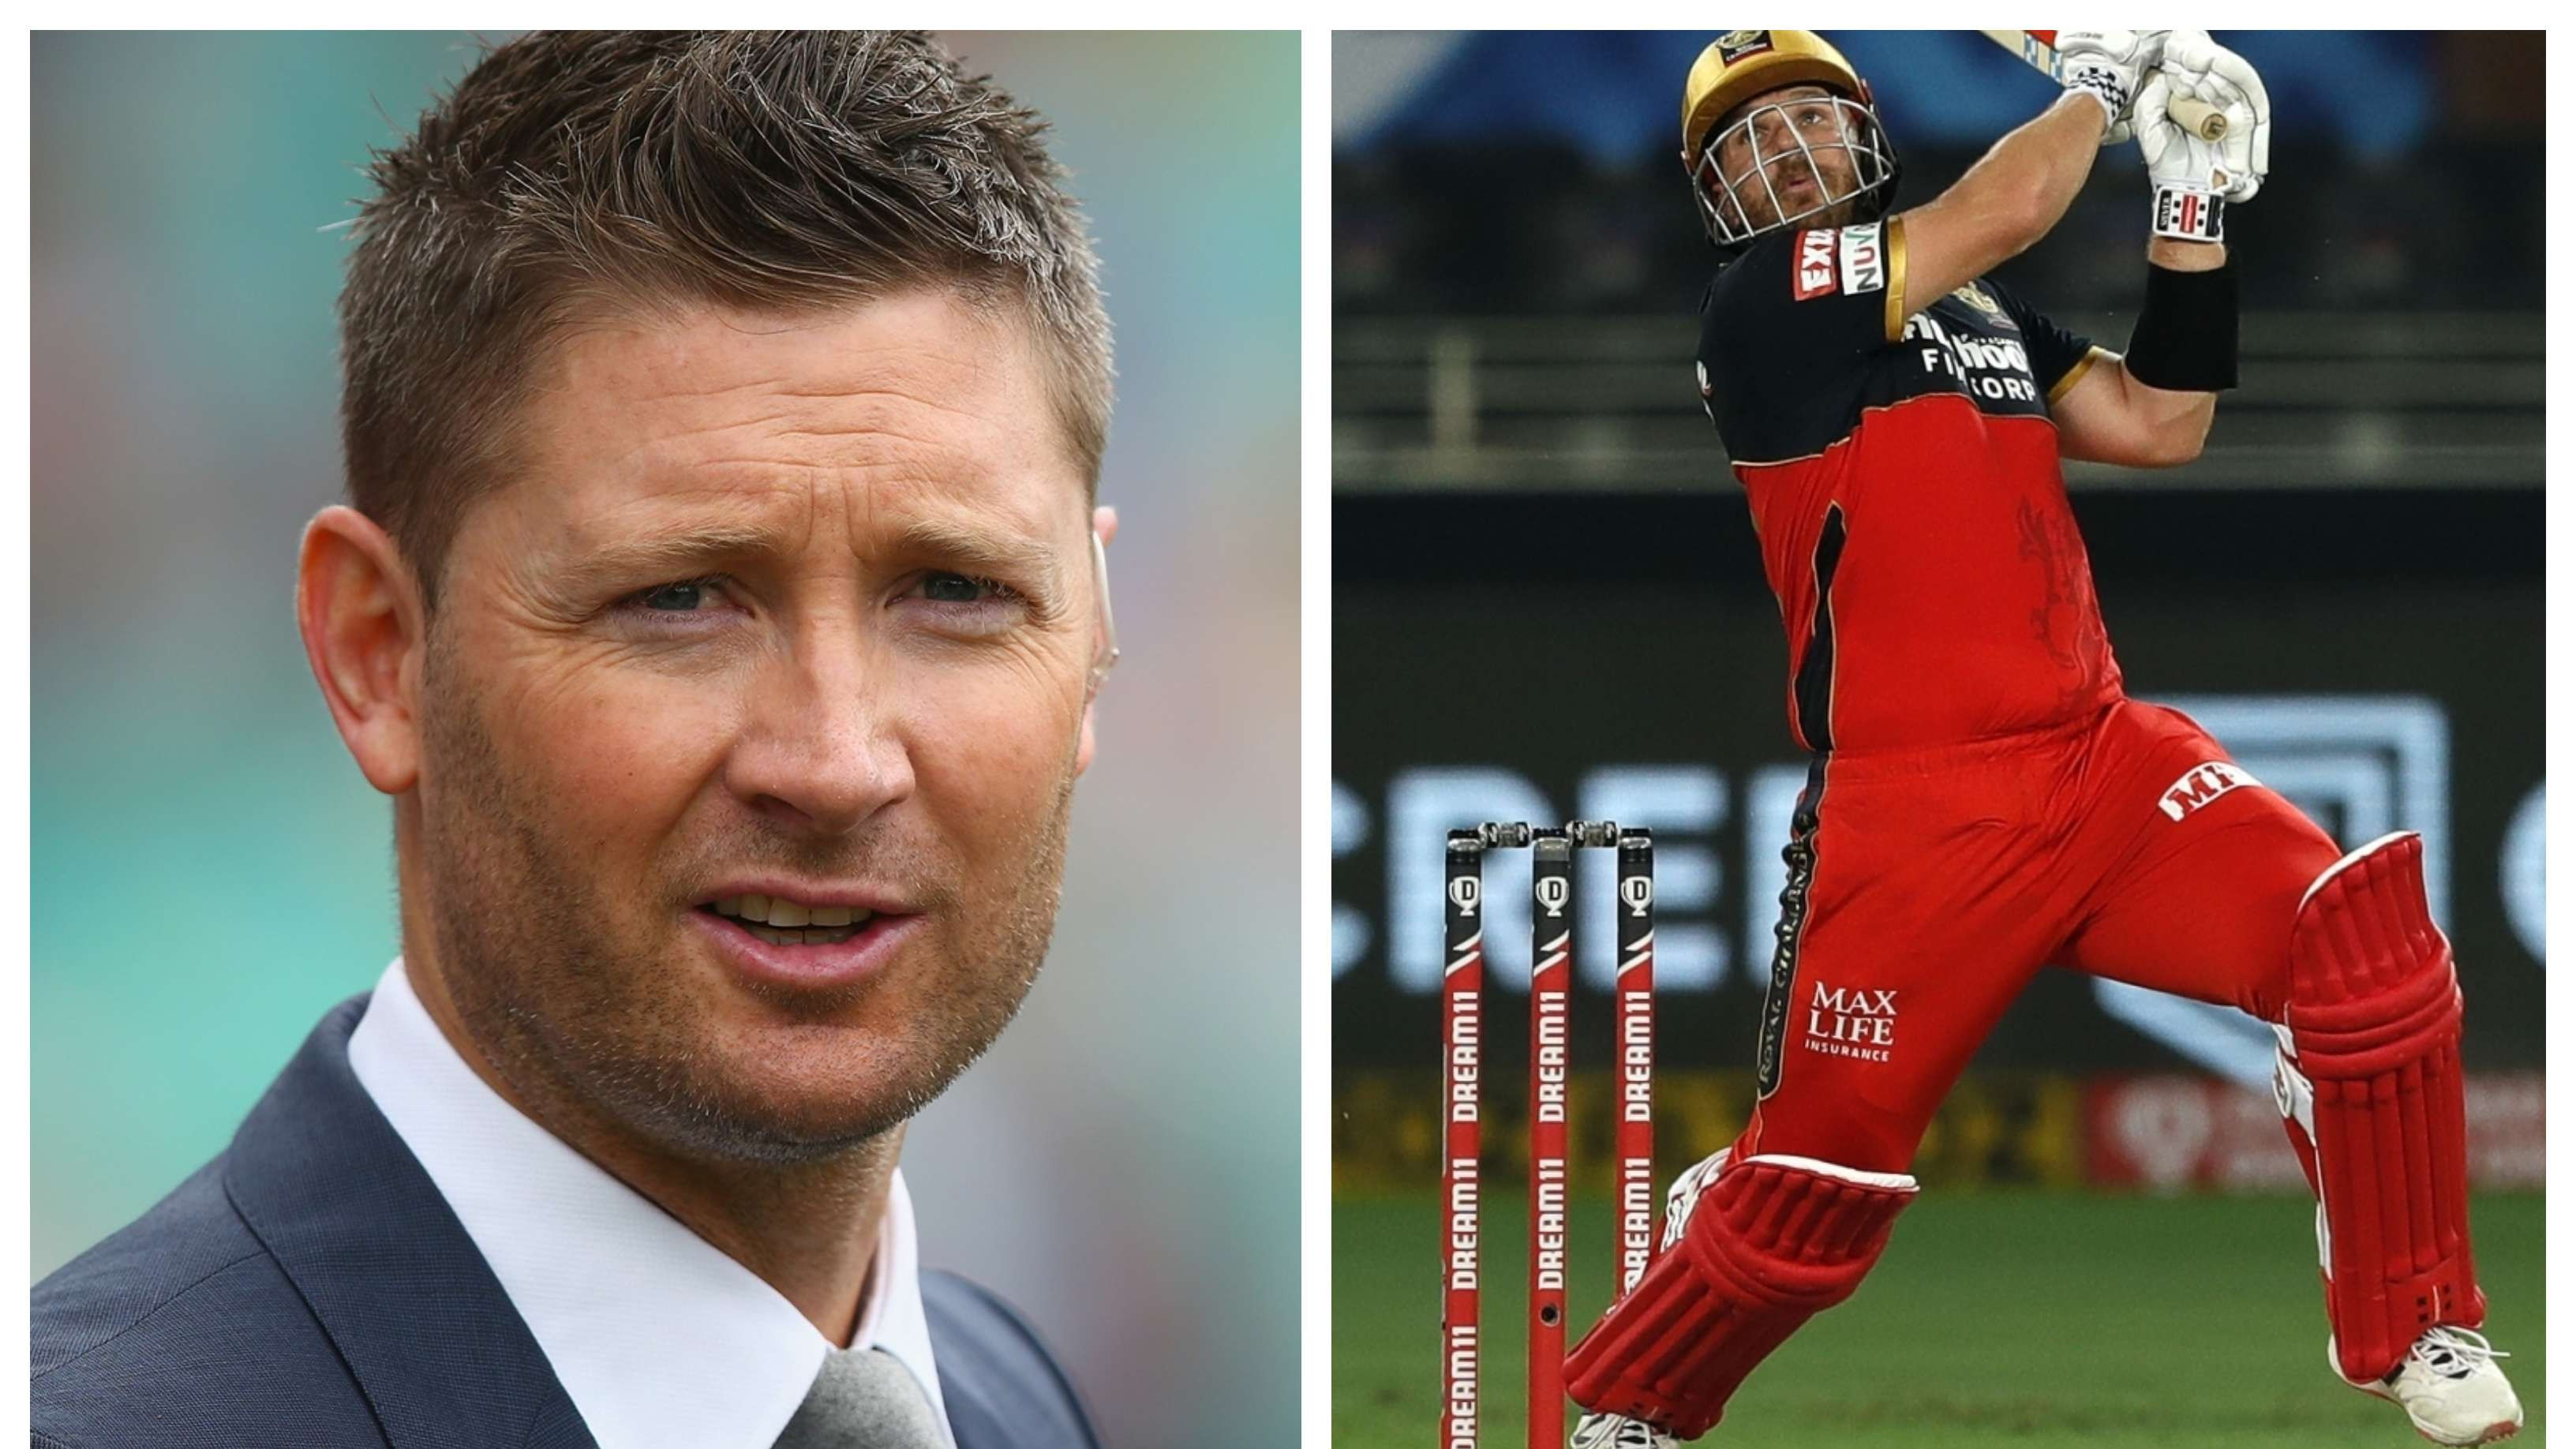 IPL 2021: 'You should be expecting every team wants you', Clarke slams Finch's attitude after IPL snub